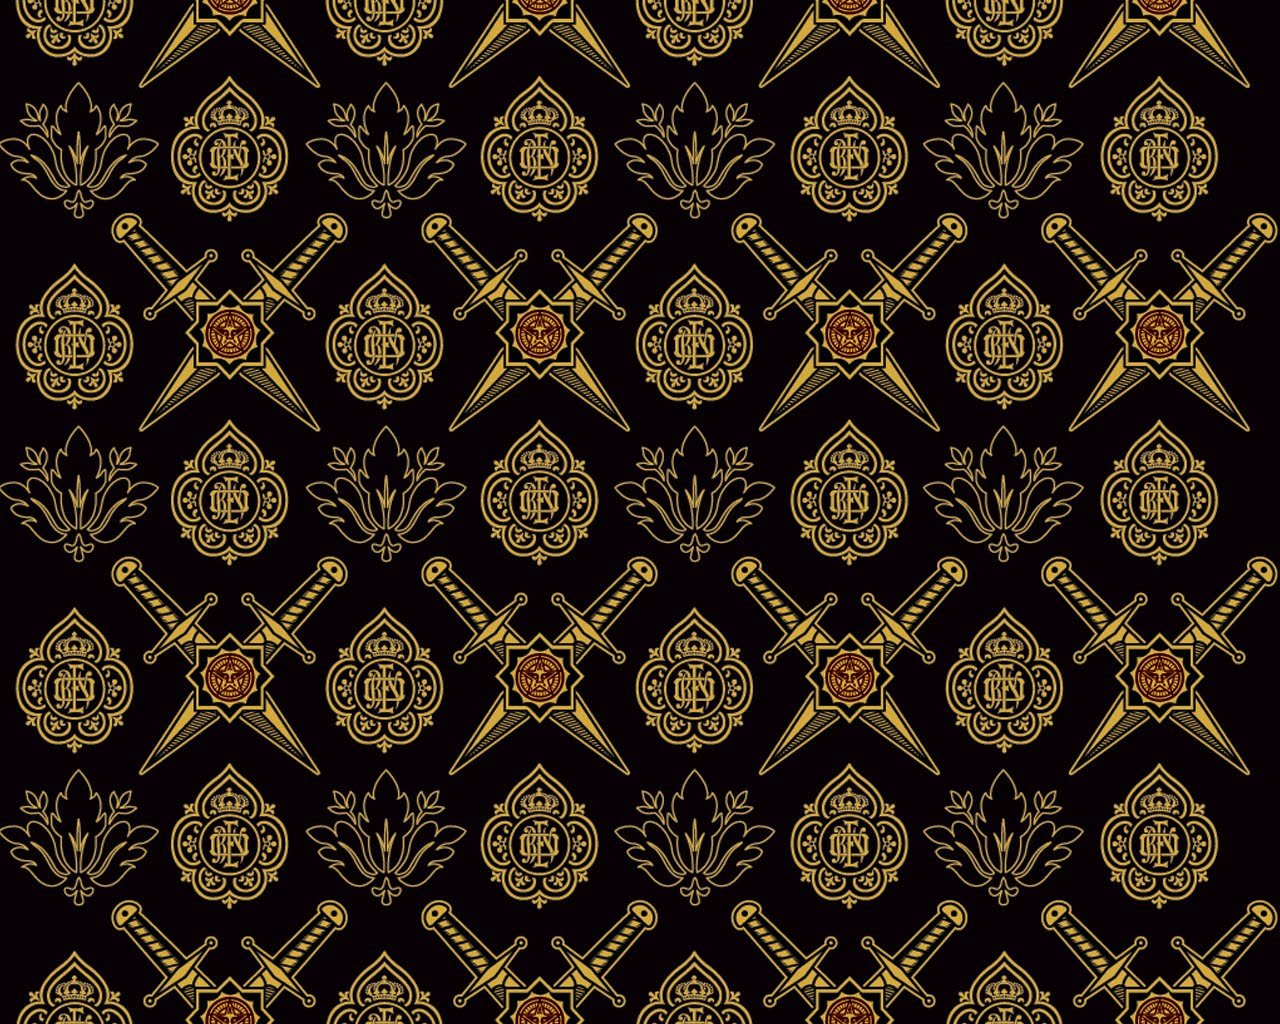 Wallpaper Obey Giant Obey Giant Wallpapers